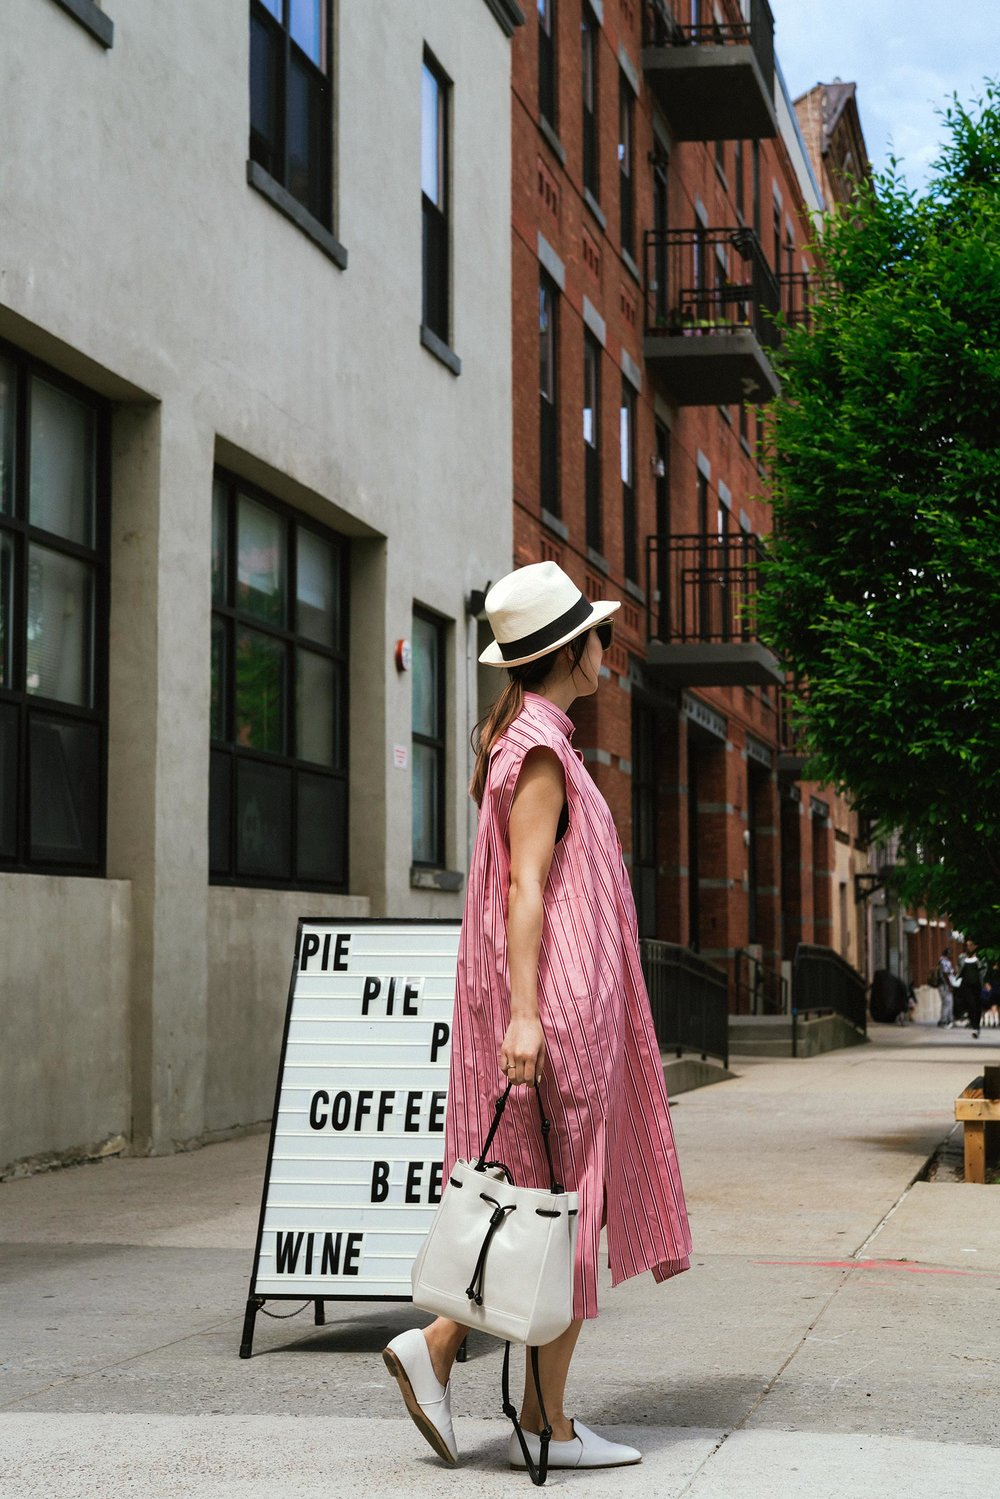 Balenciaga Dress, von Holzhausen Bag, The Row Shoes, J.Crew Hat